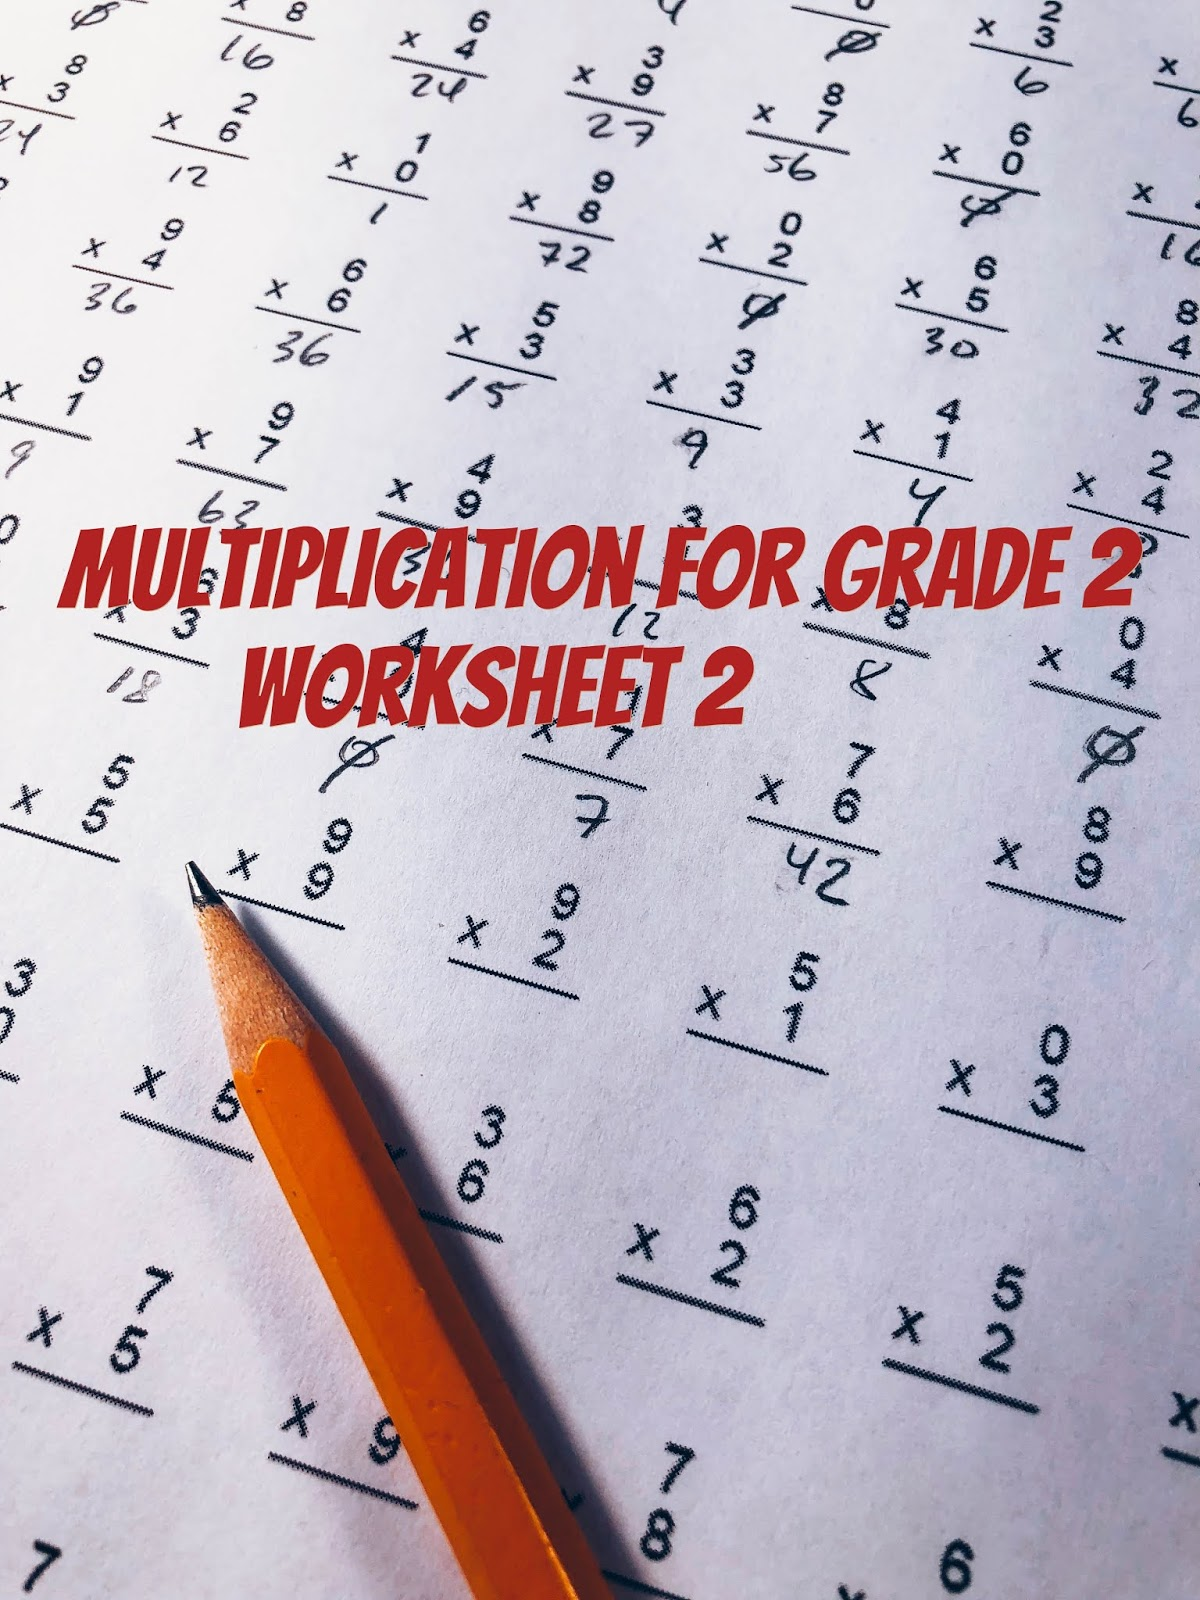 small resolution of Math Quiz Multiplication worksheet 2 for grade 2 (Questions and Answers)